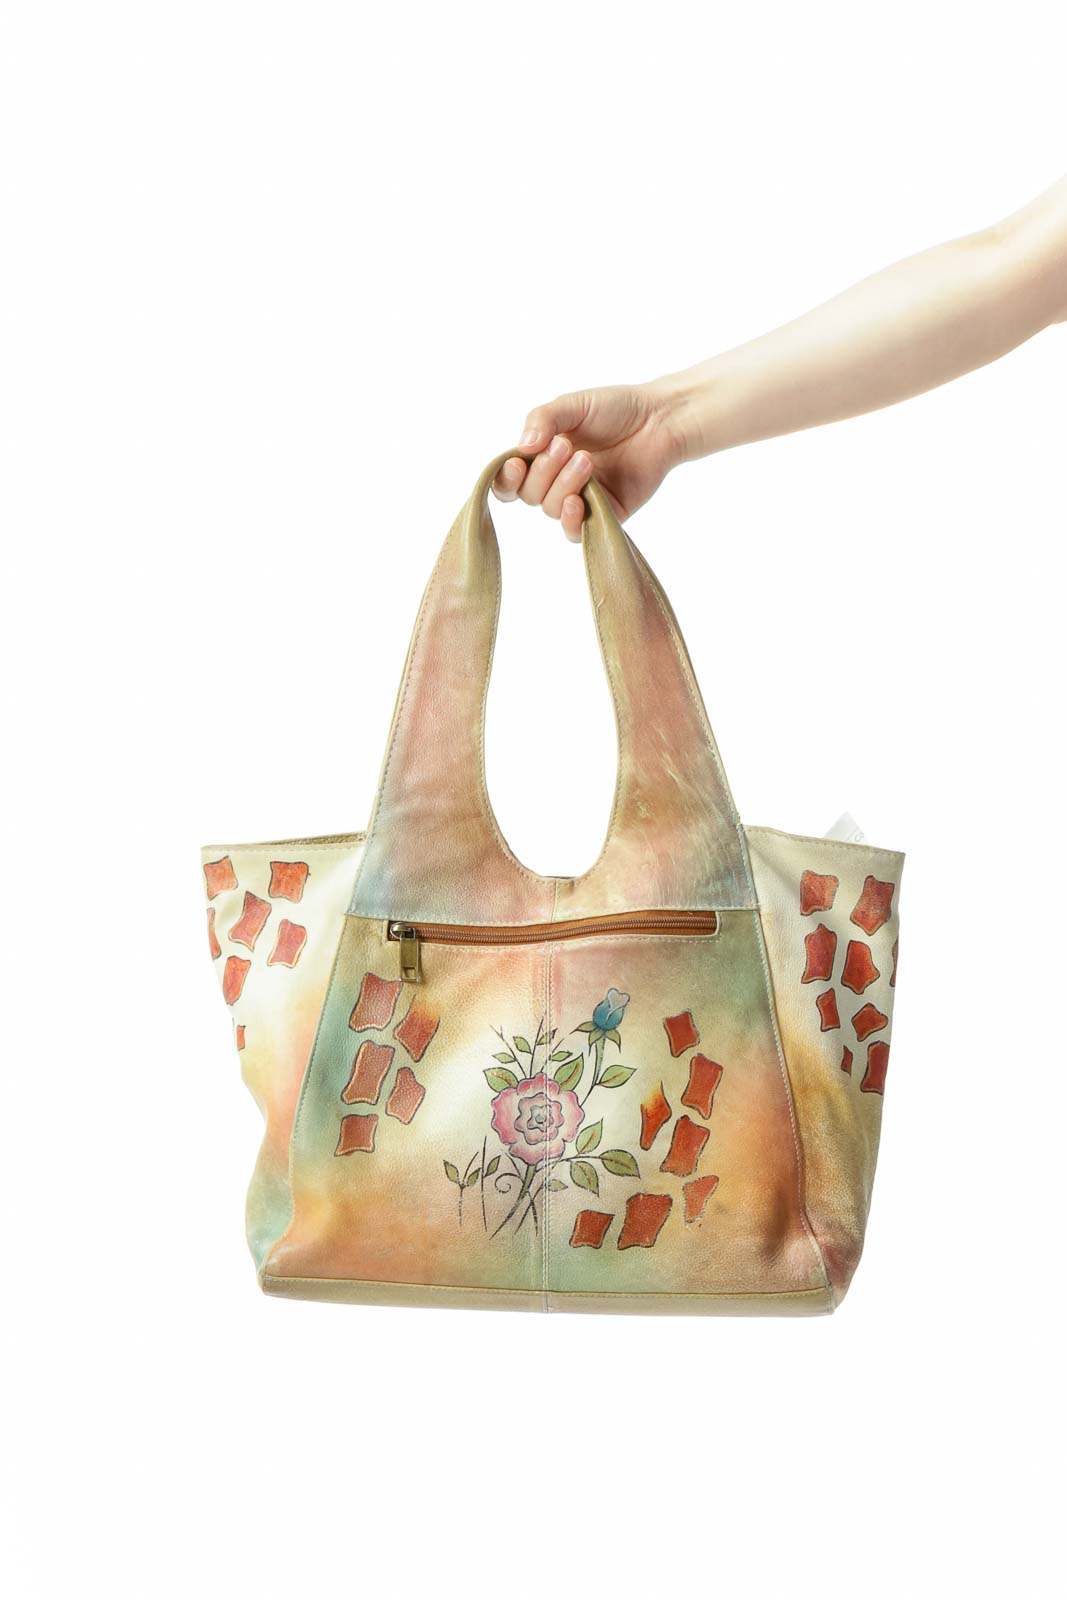 Beige Floral Vintage Leather Tote Bag